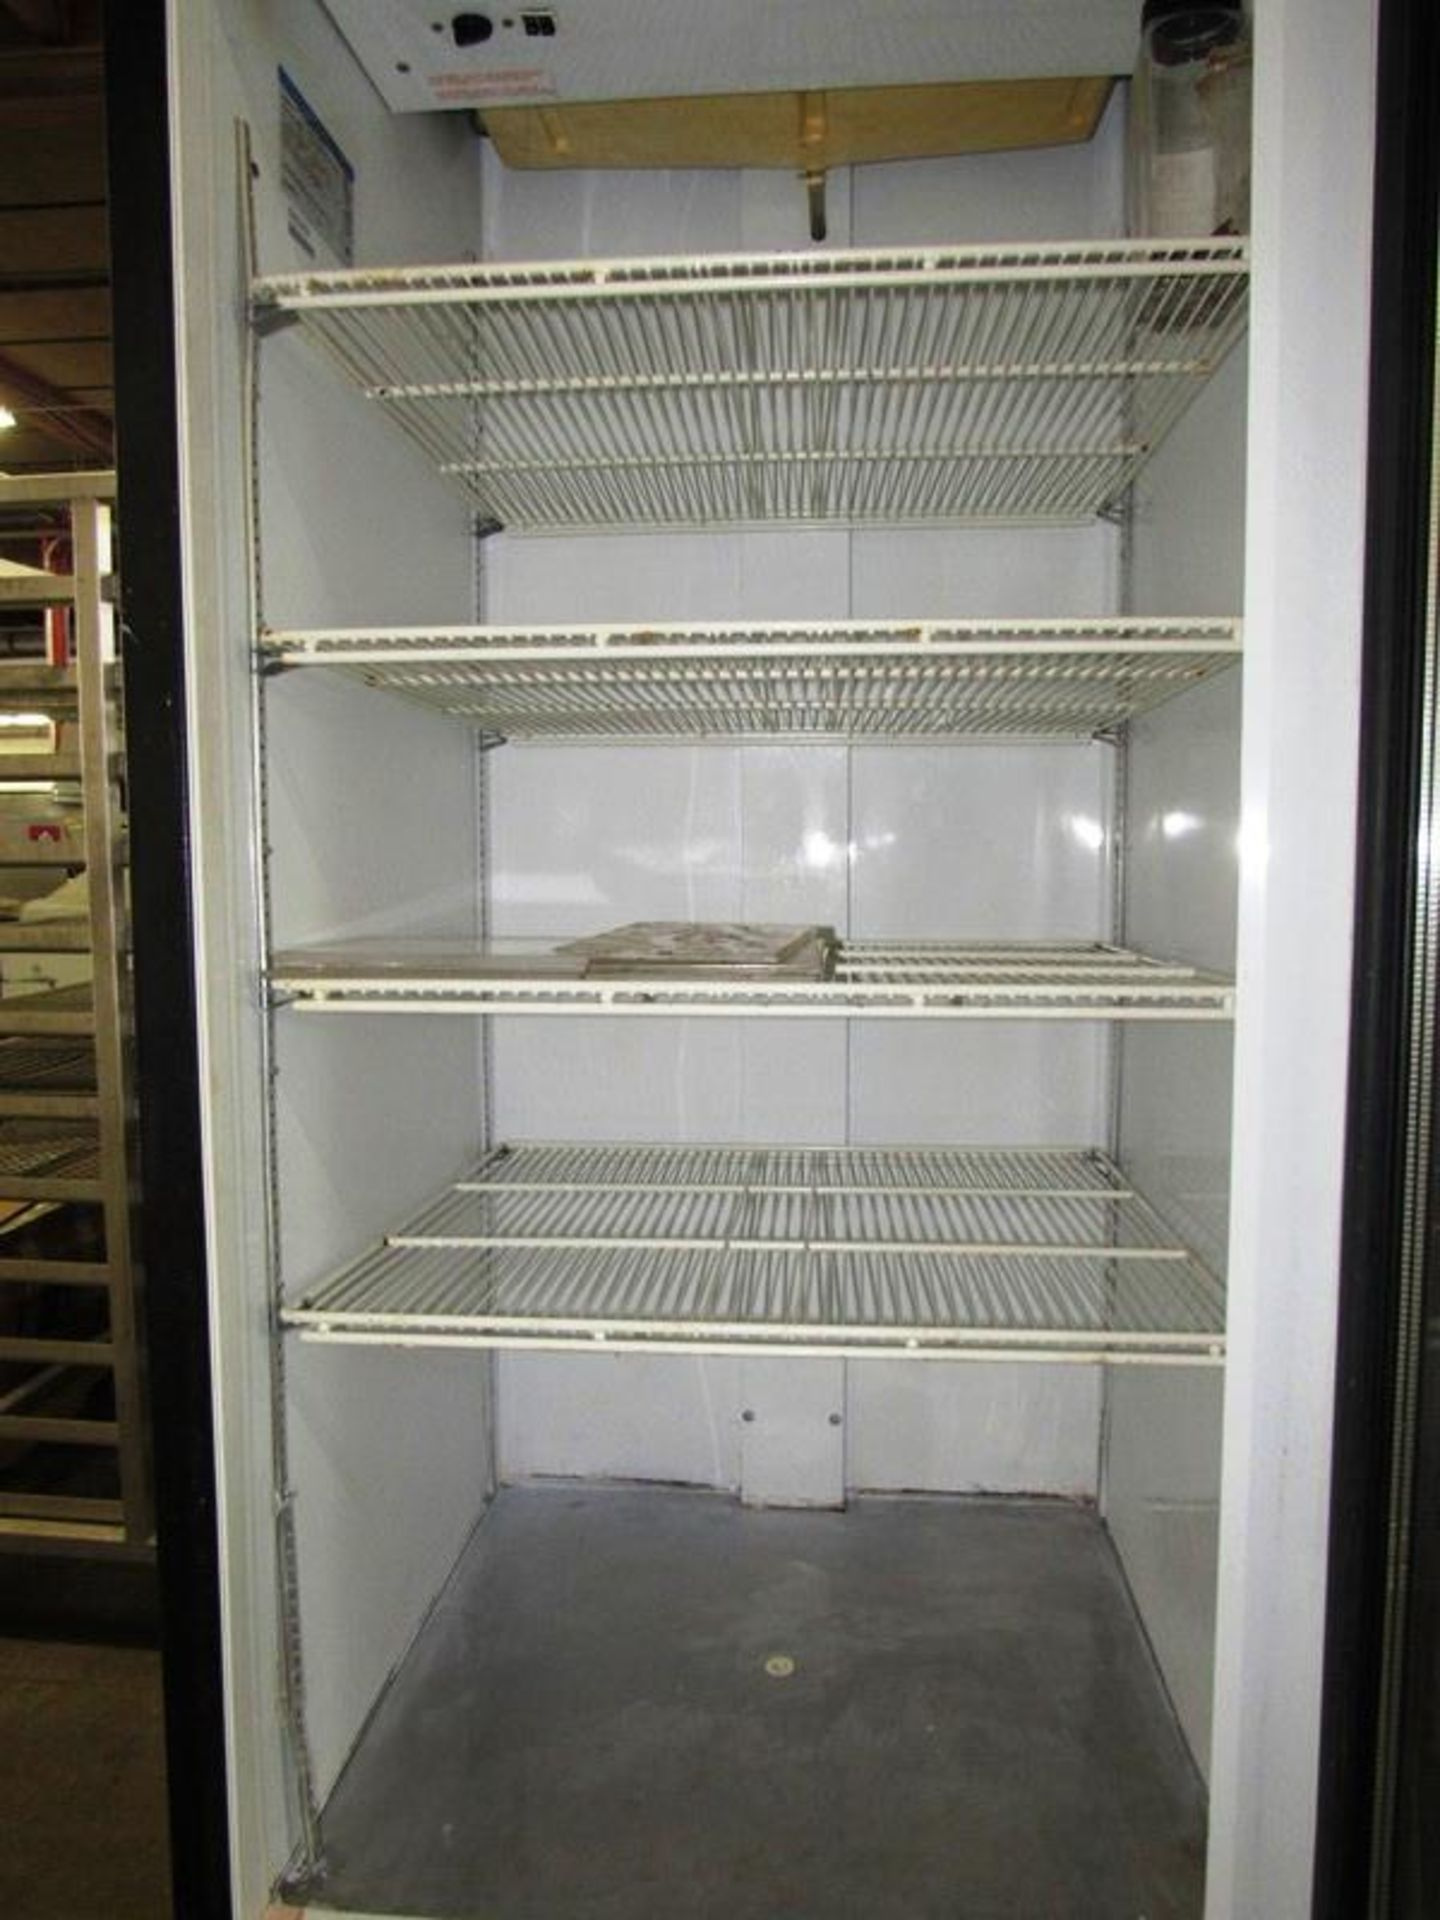 Beverage Air Mdl. MT-27 Refrigerator and/or Freezer, 4 shelves, single door, 27 cu. ft., 30 W X - Image 2 of 4